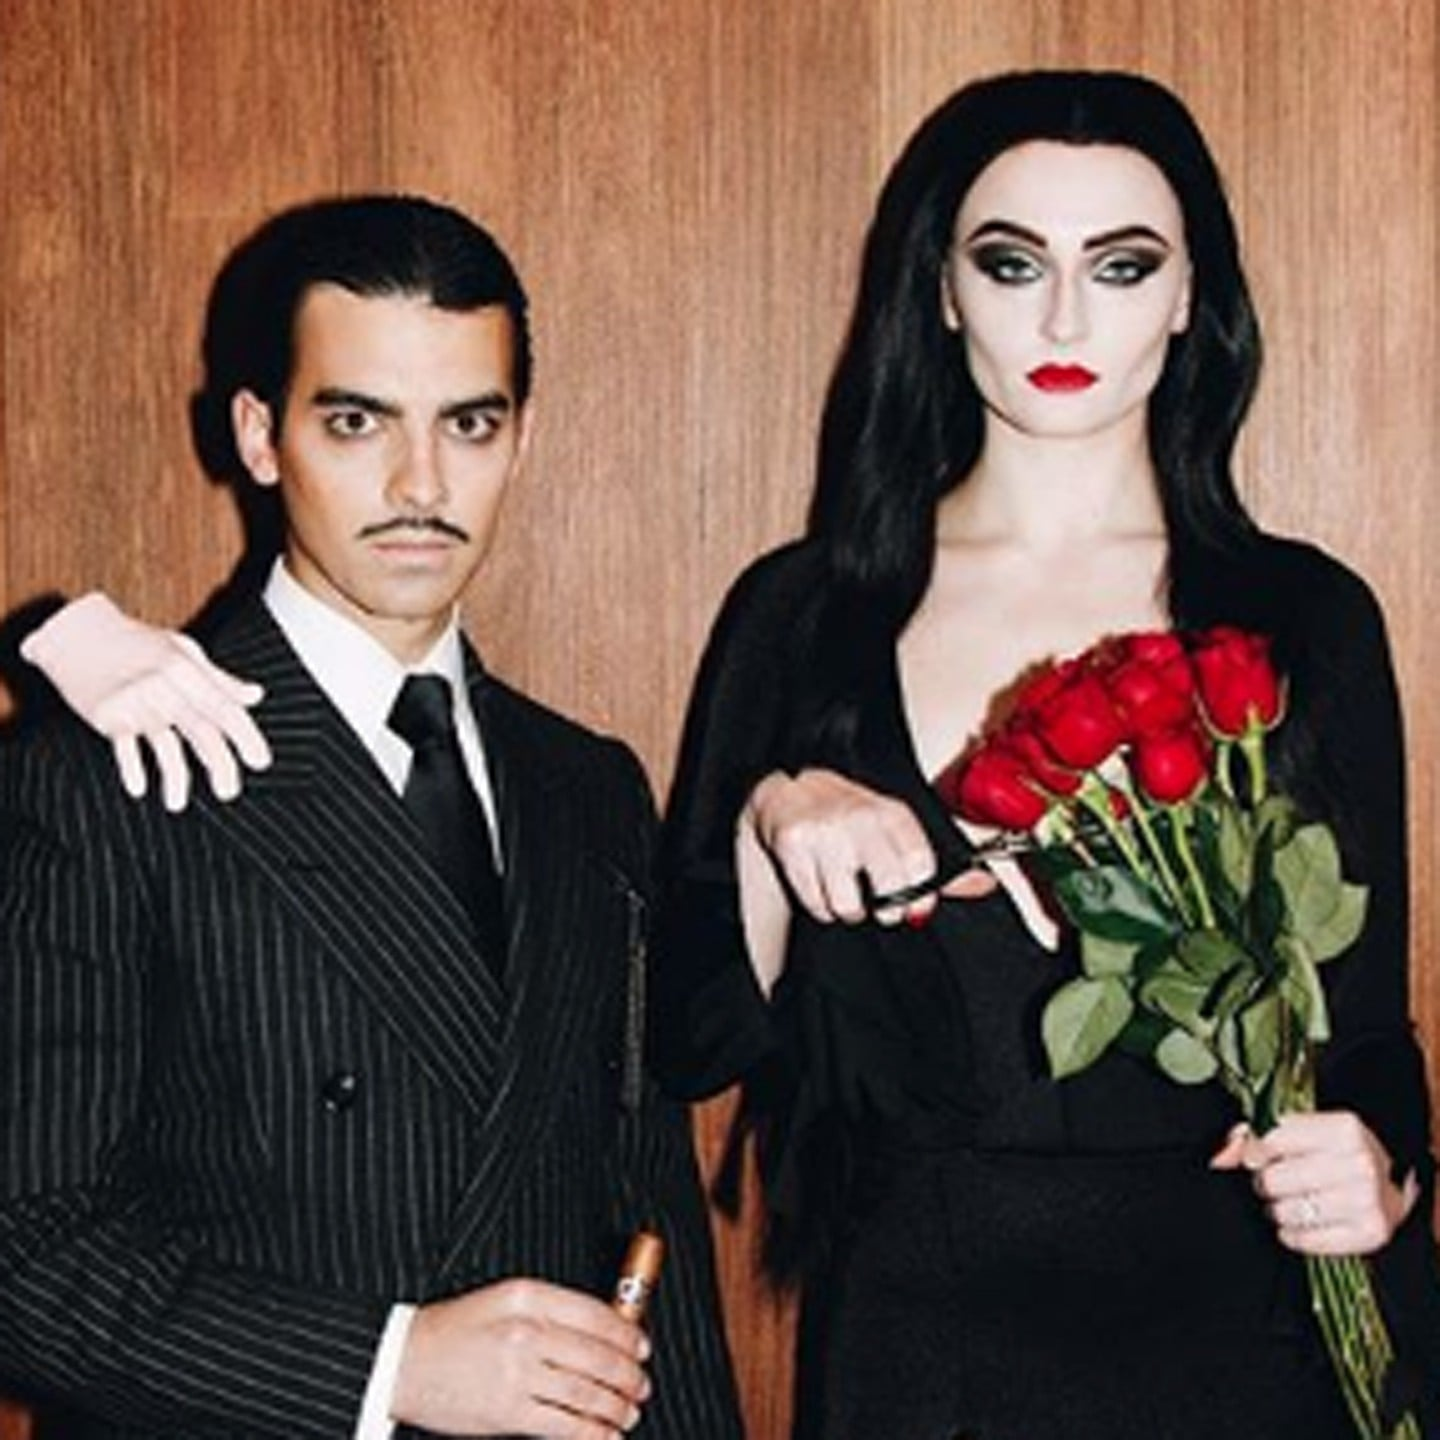 Joe Jonas And Sophie Turner Halloween Costume 2018 Popsugar Celebrity